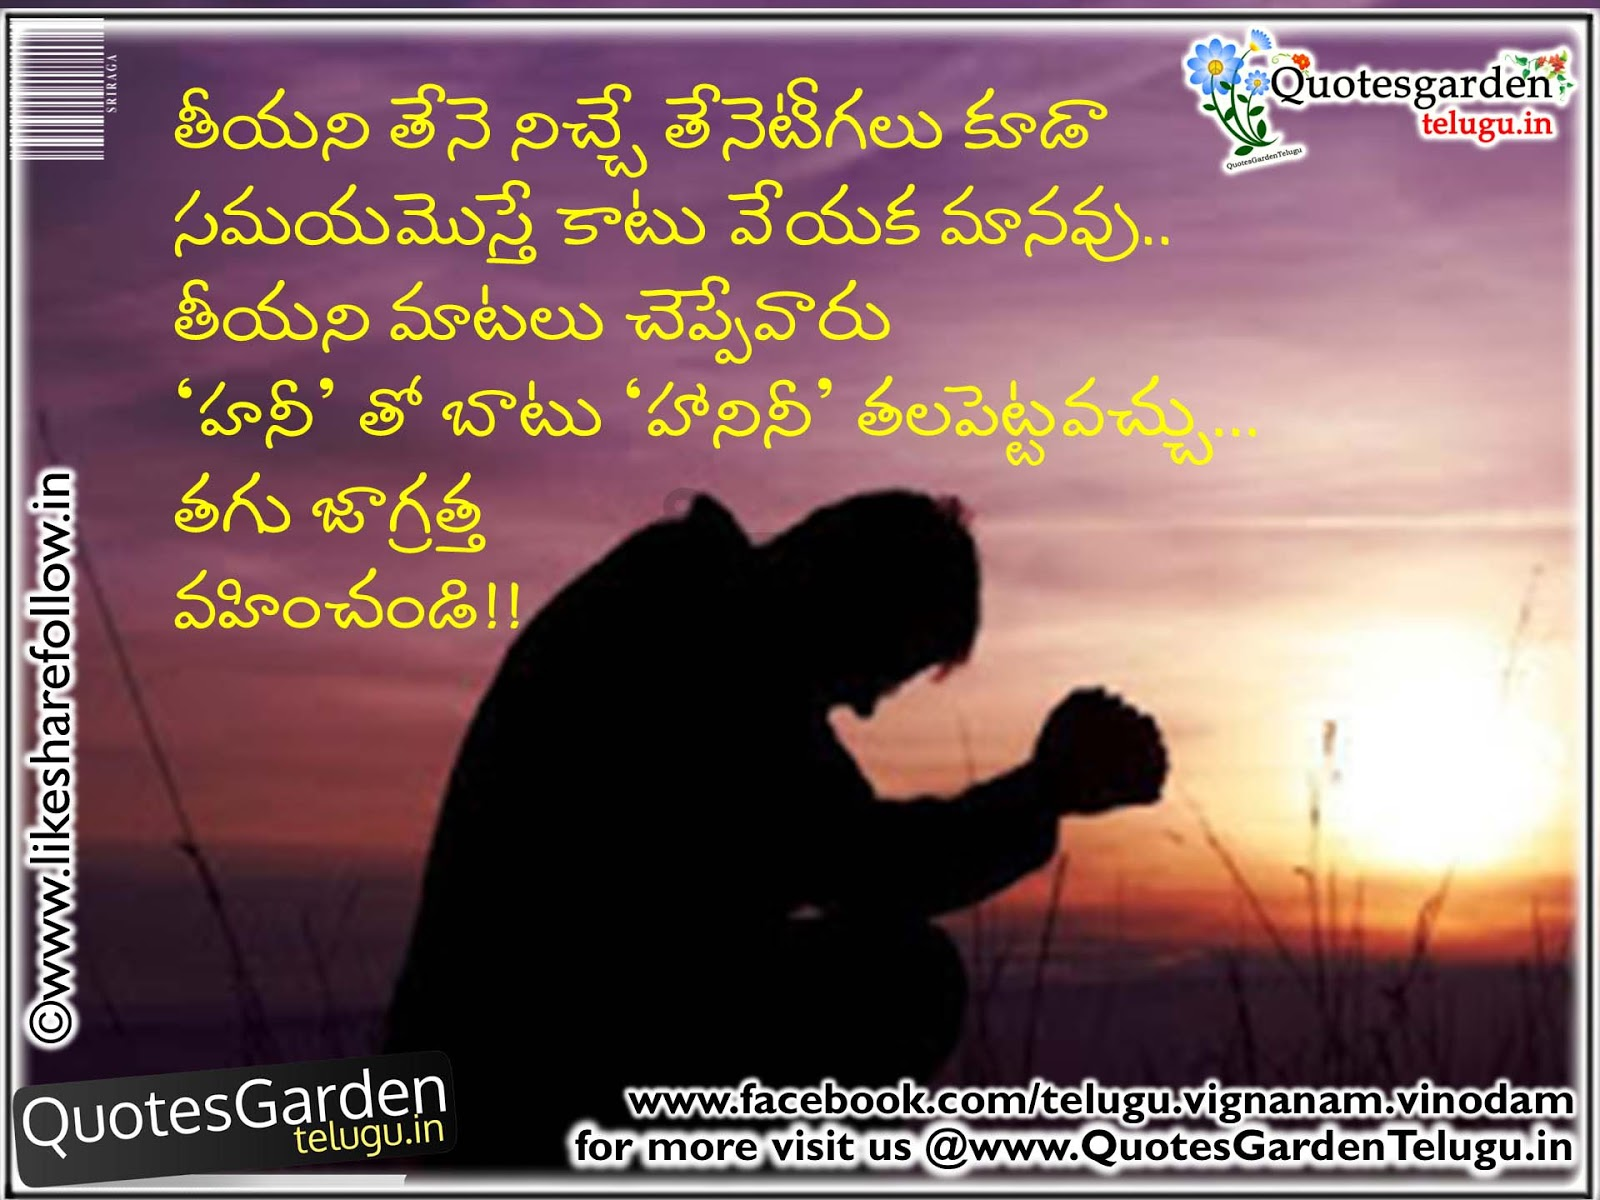 Telugu life quotes about relationship